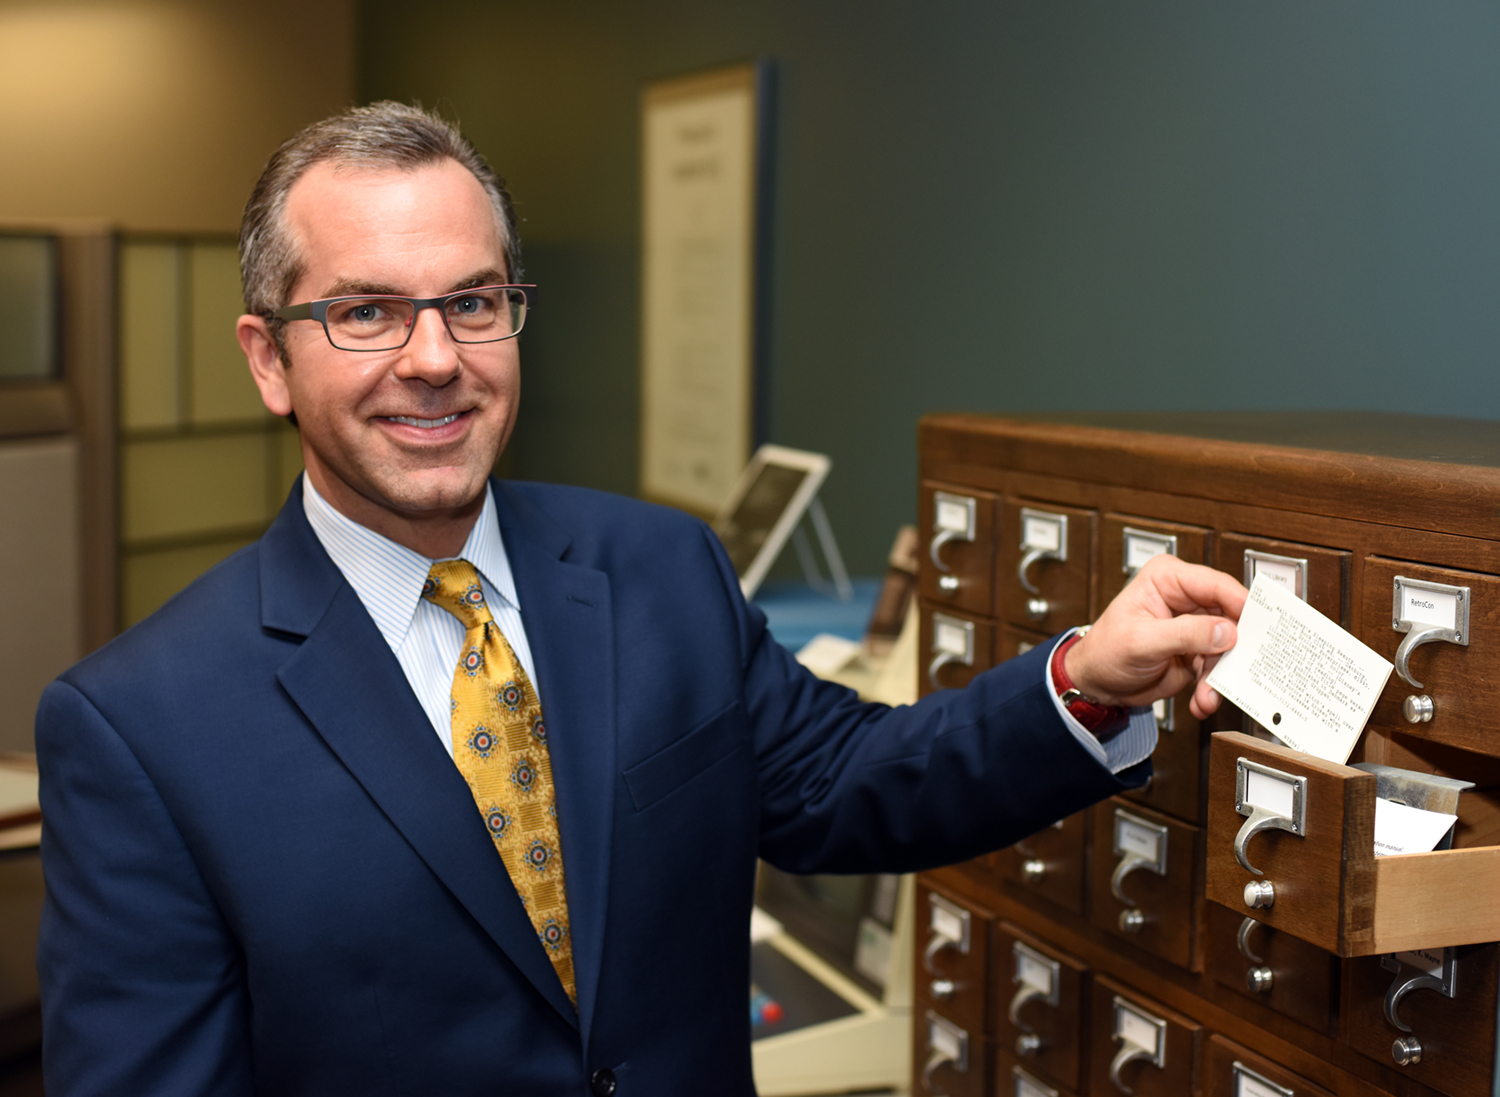 Skip Prichard with the last OCLC printed catalog card